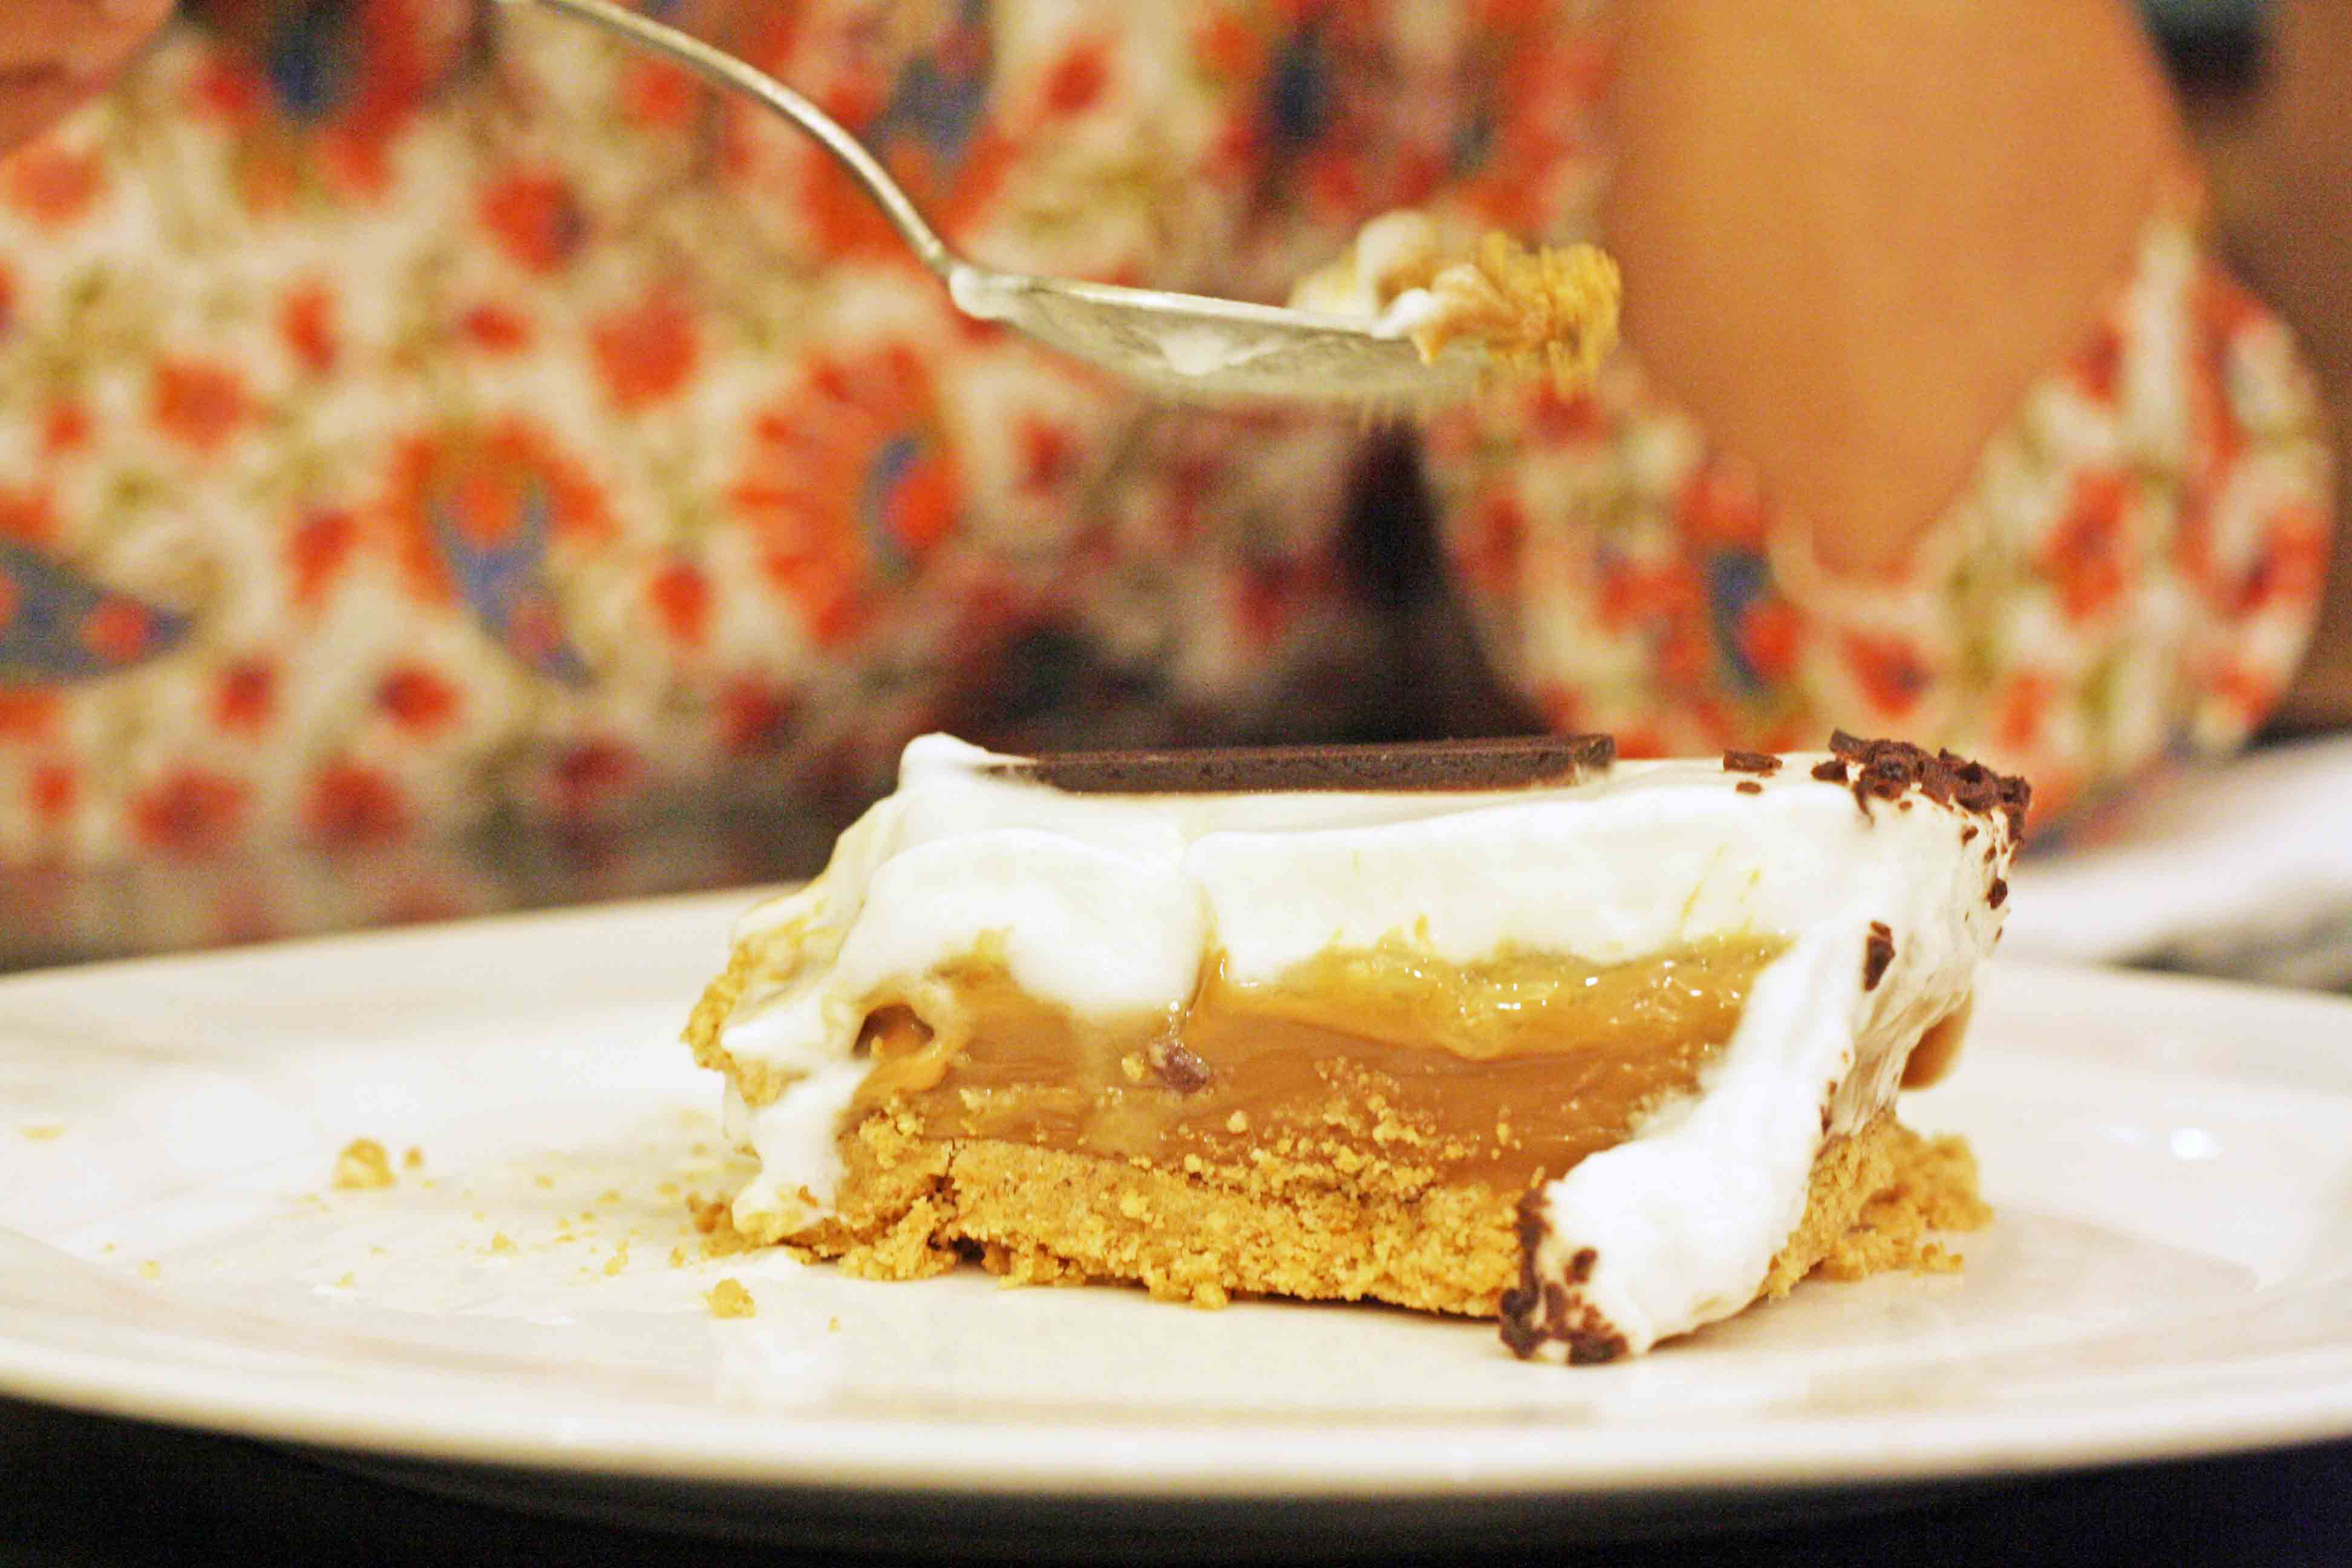 City Food - Banoffee Pie, The Big Chill Café